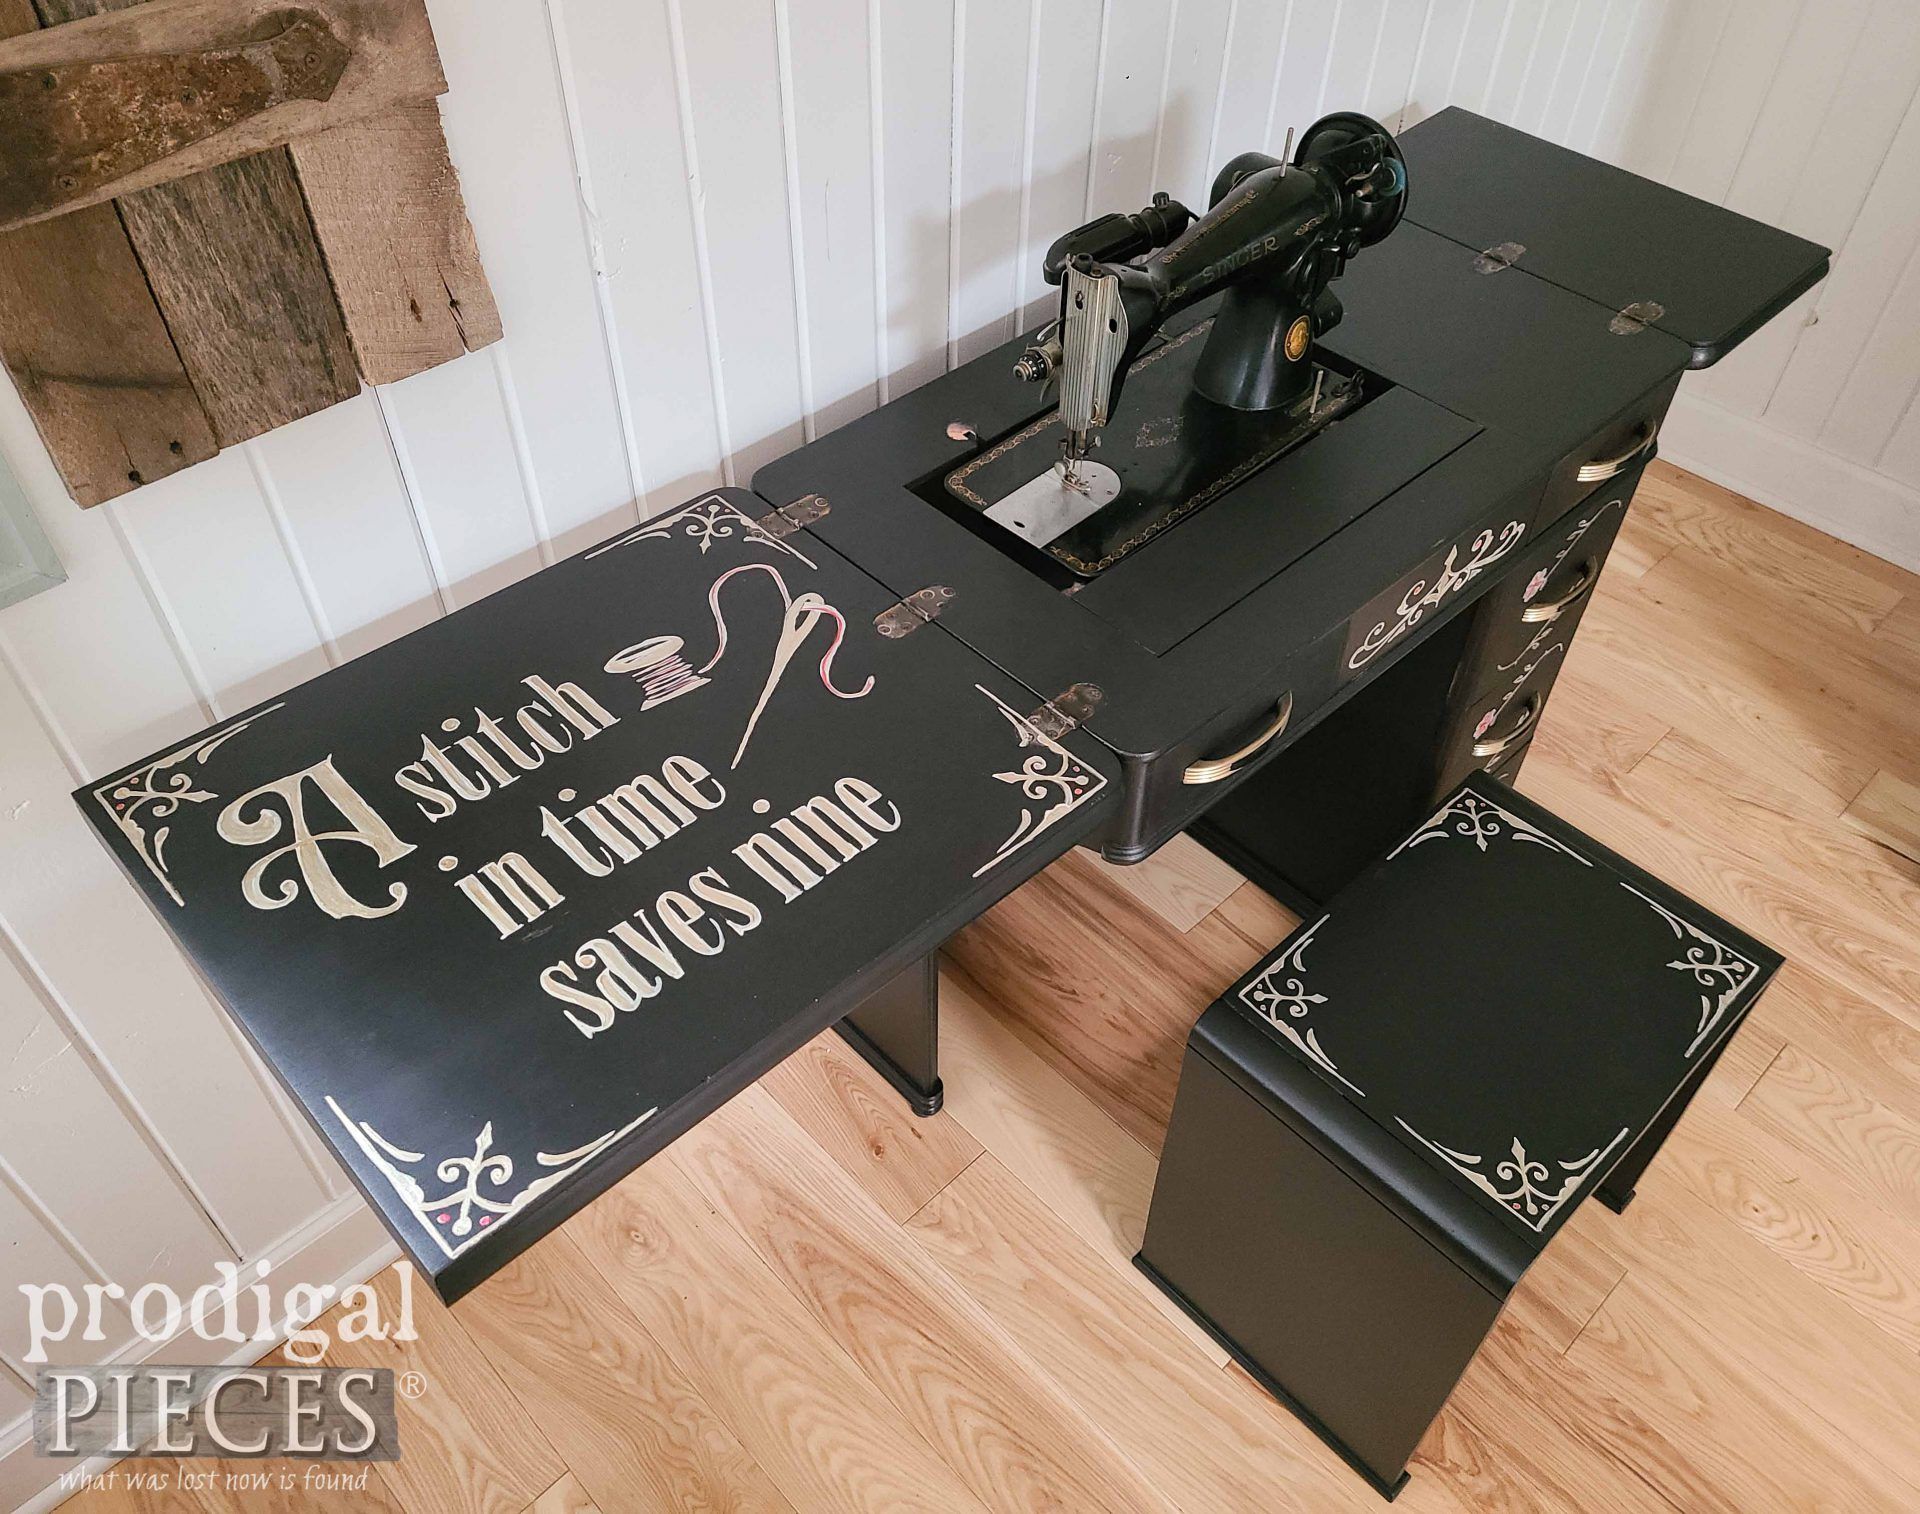 Antique Art Deco Sewing Desk with Typography by Larissa of Prodigal Pieces | prodigalpieces.com #prodigalpieces #furniture #home #homedecor